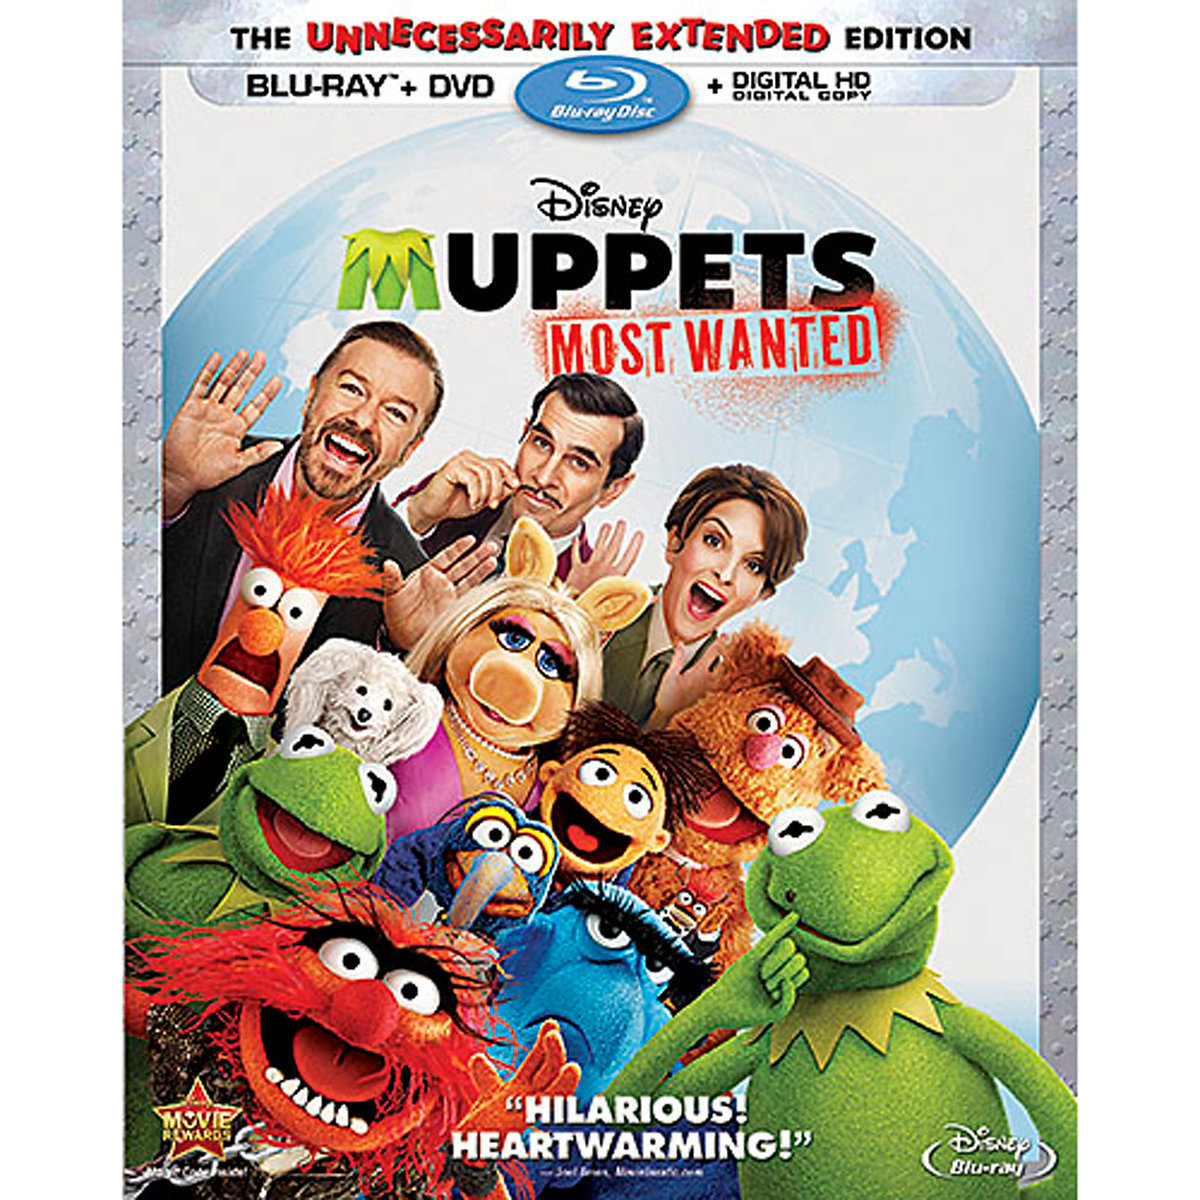 Muppets Most Wanted (The Unnecessarily Extended Edition) (Blu-ray + DVD + Digital HD)